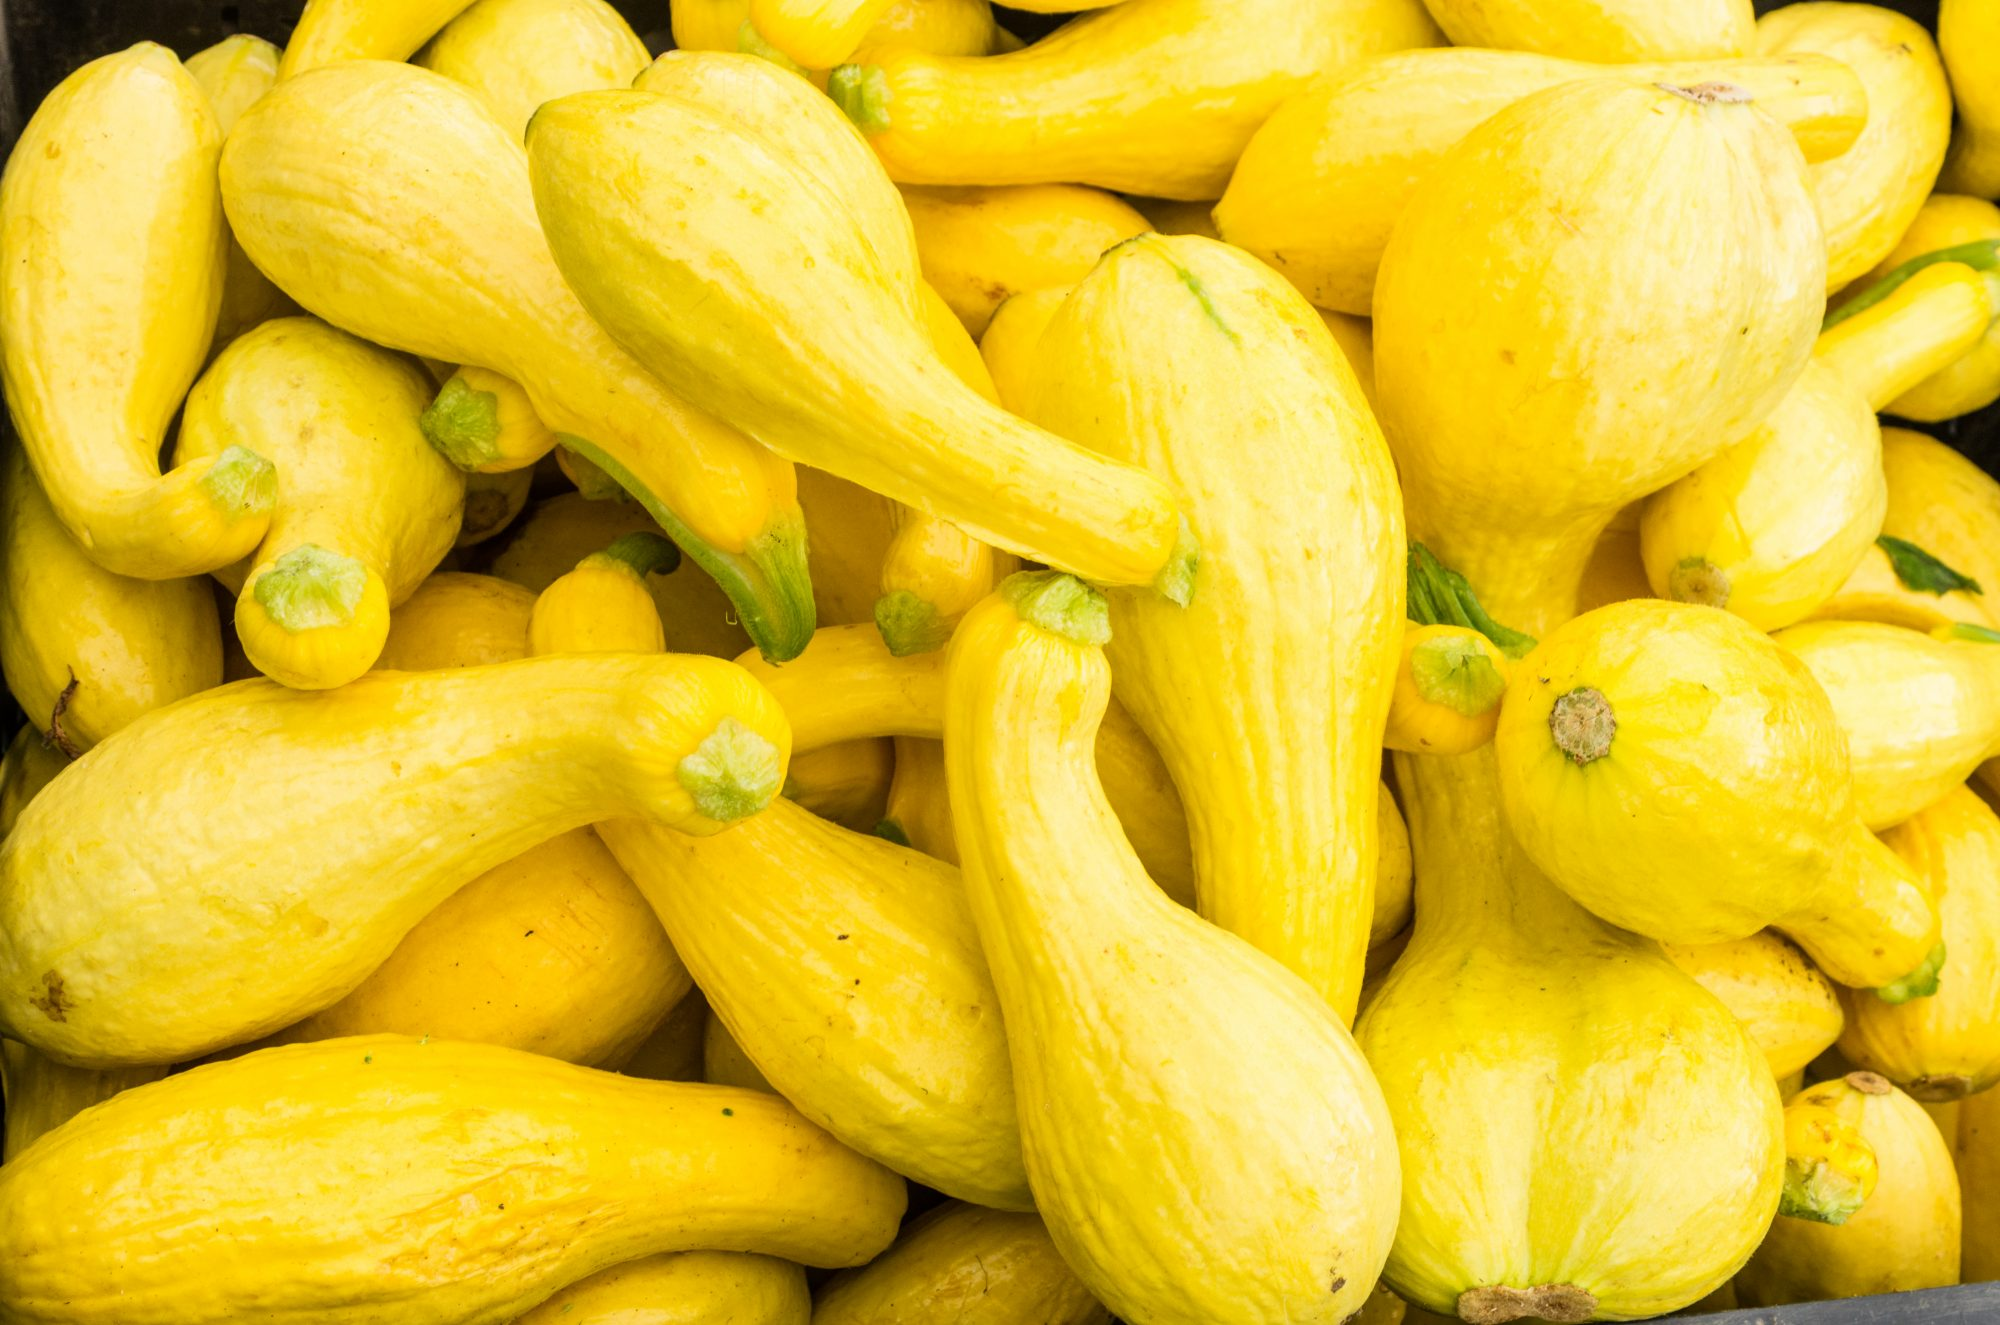 gettyyellowsquash.jpg